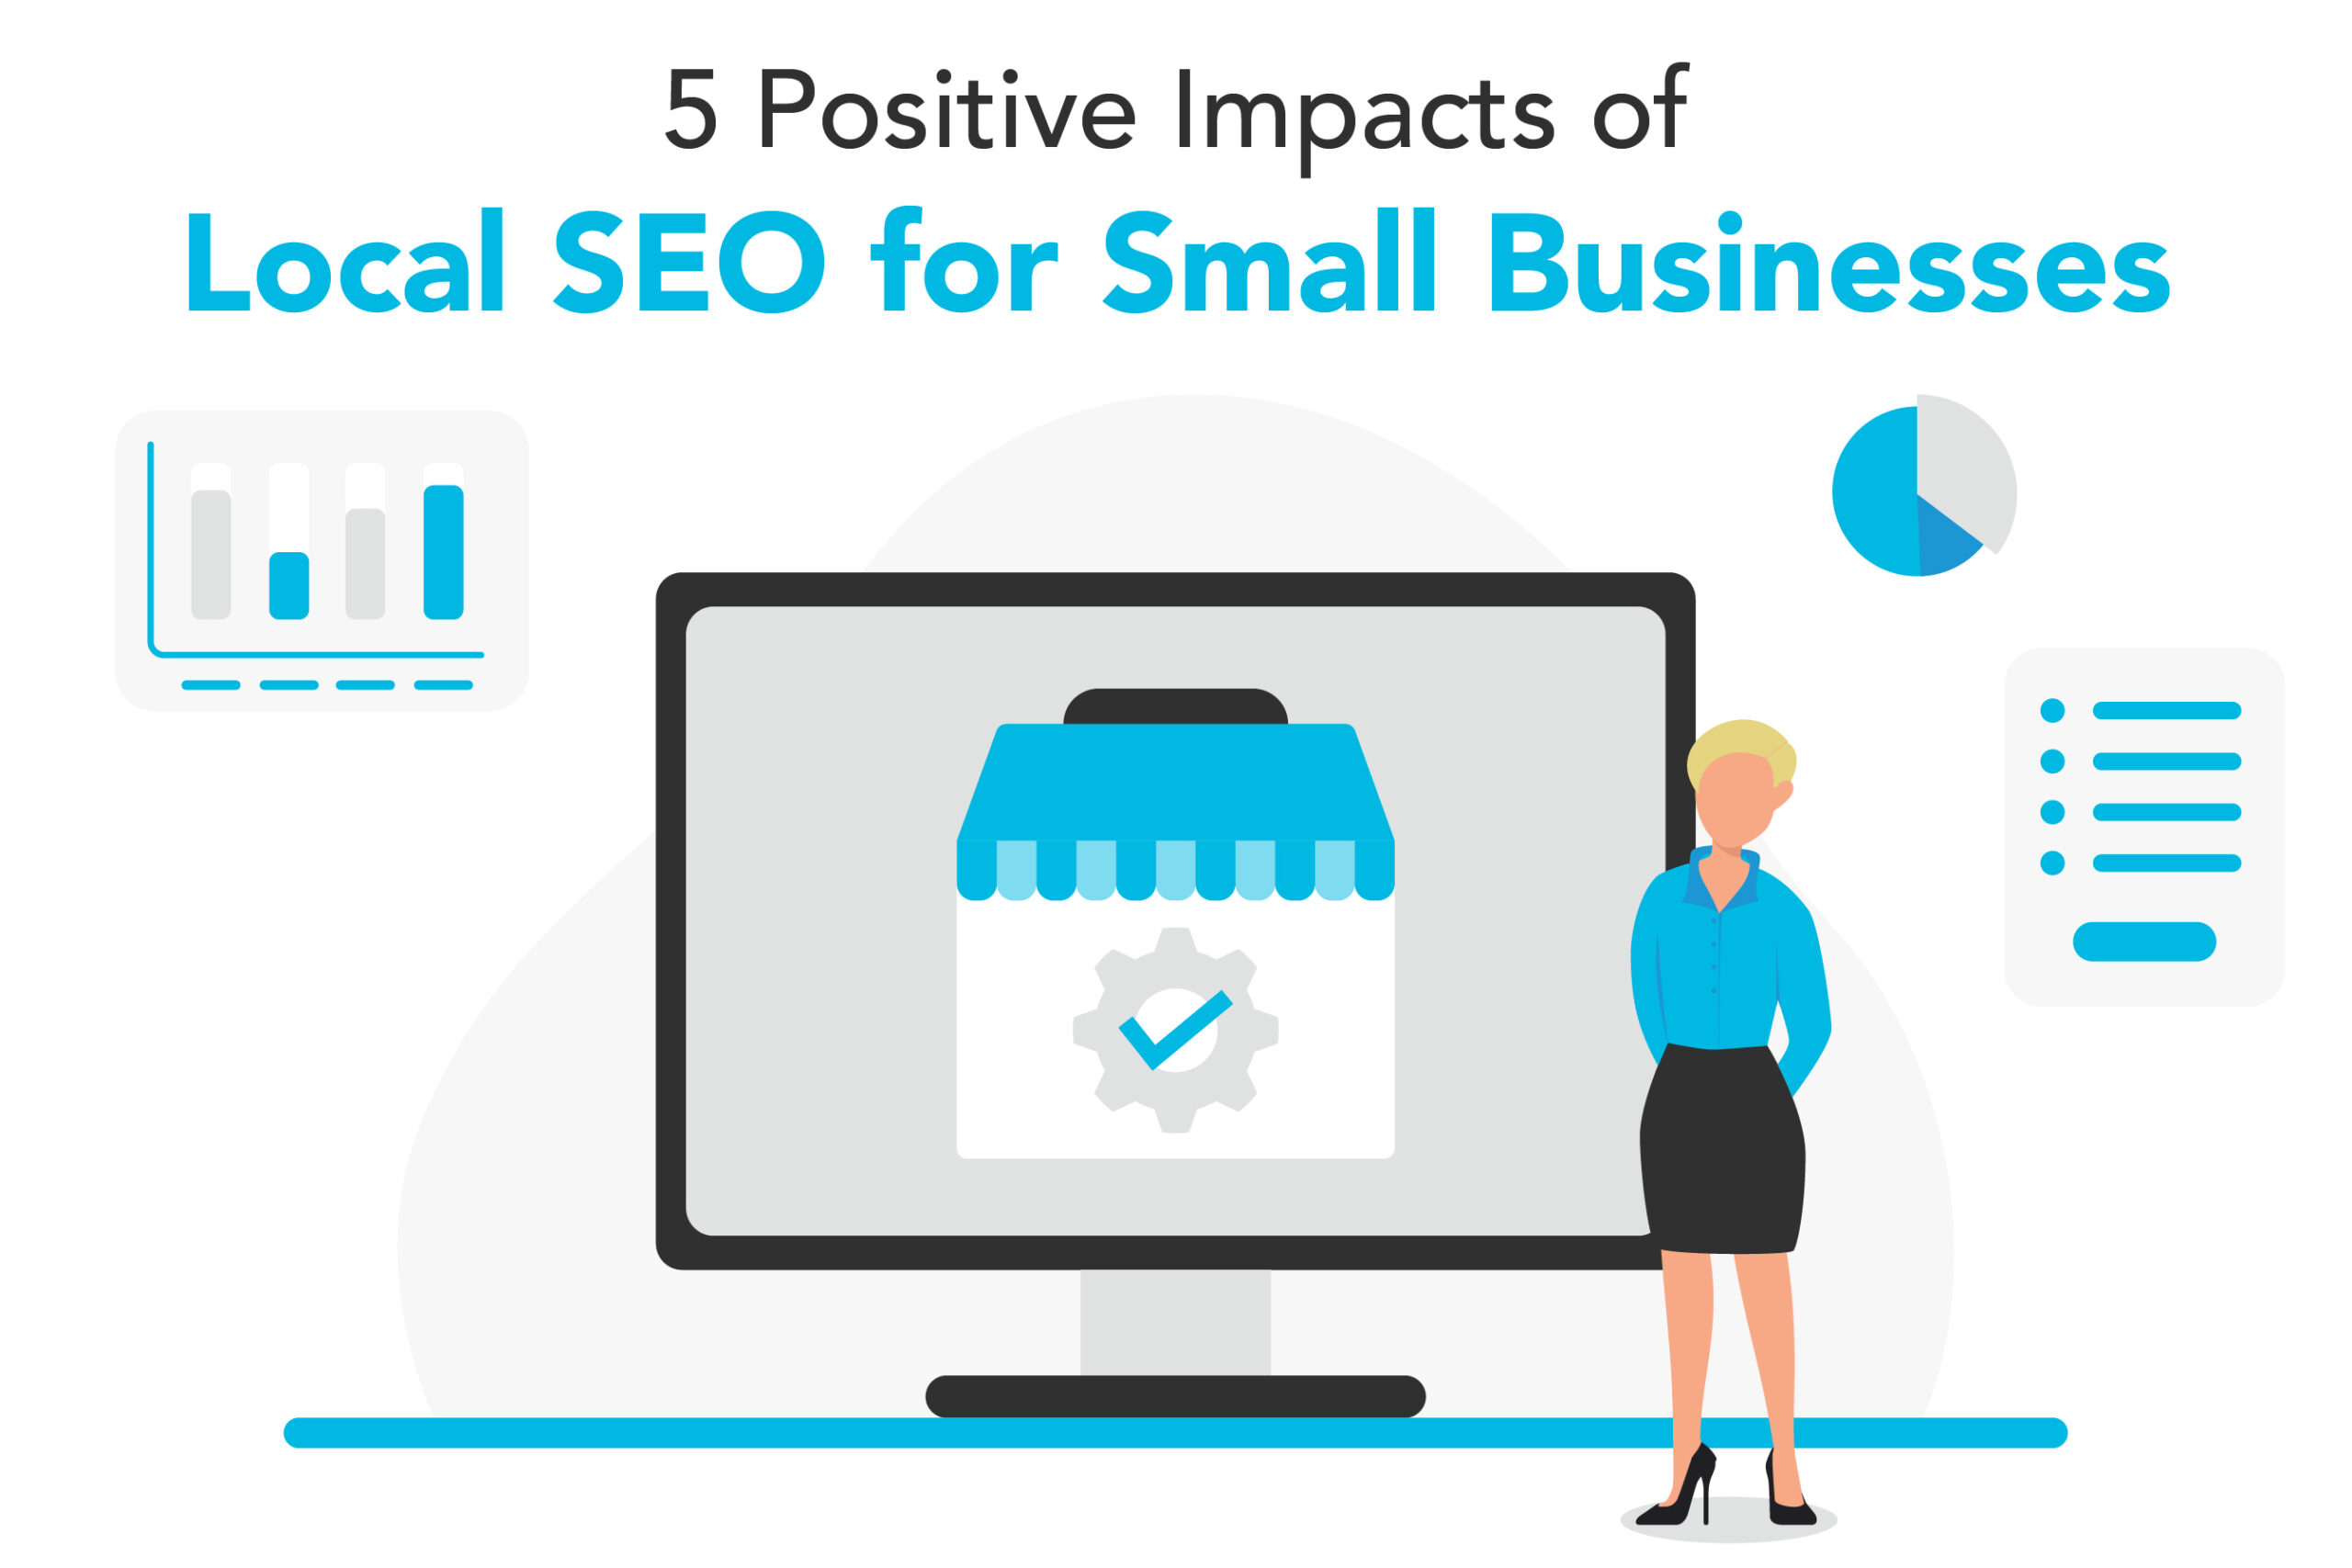 5 Positive Impacts of Local SEO for Small Businesses